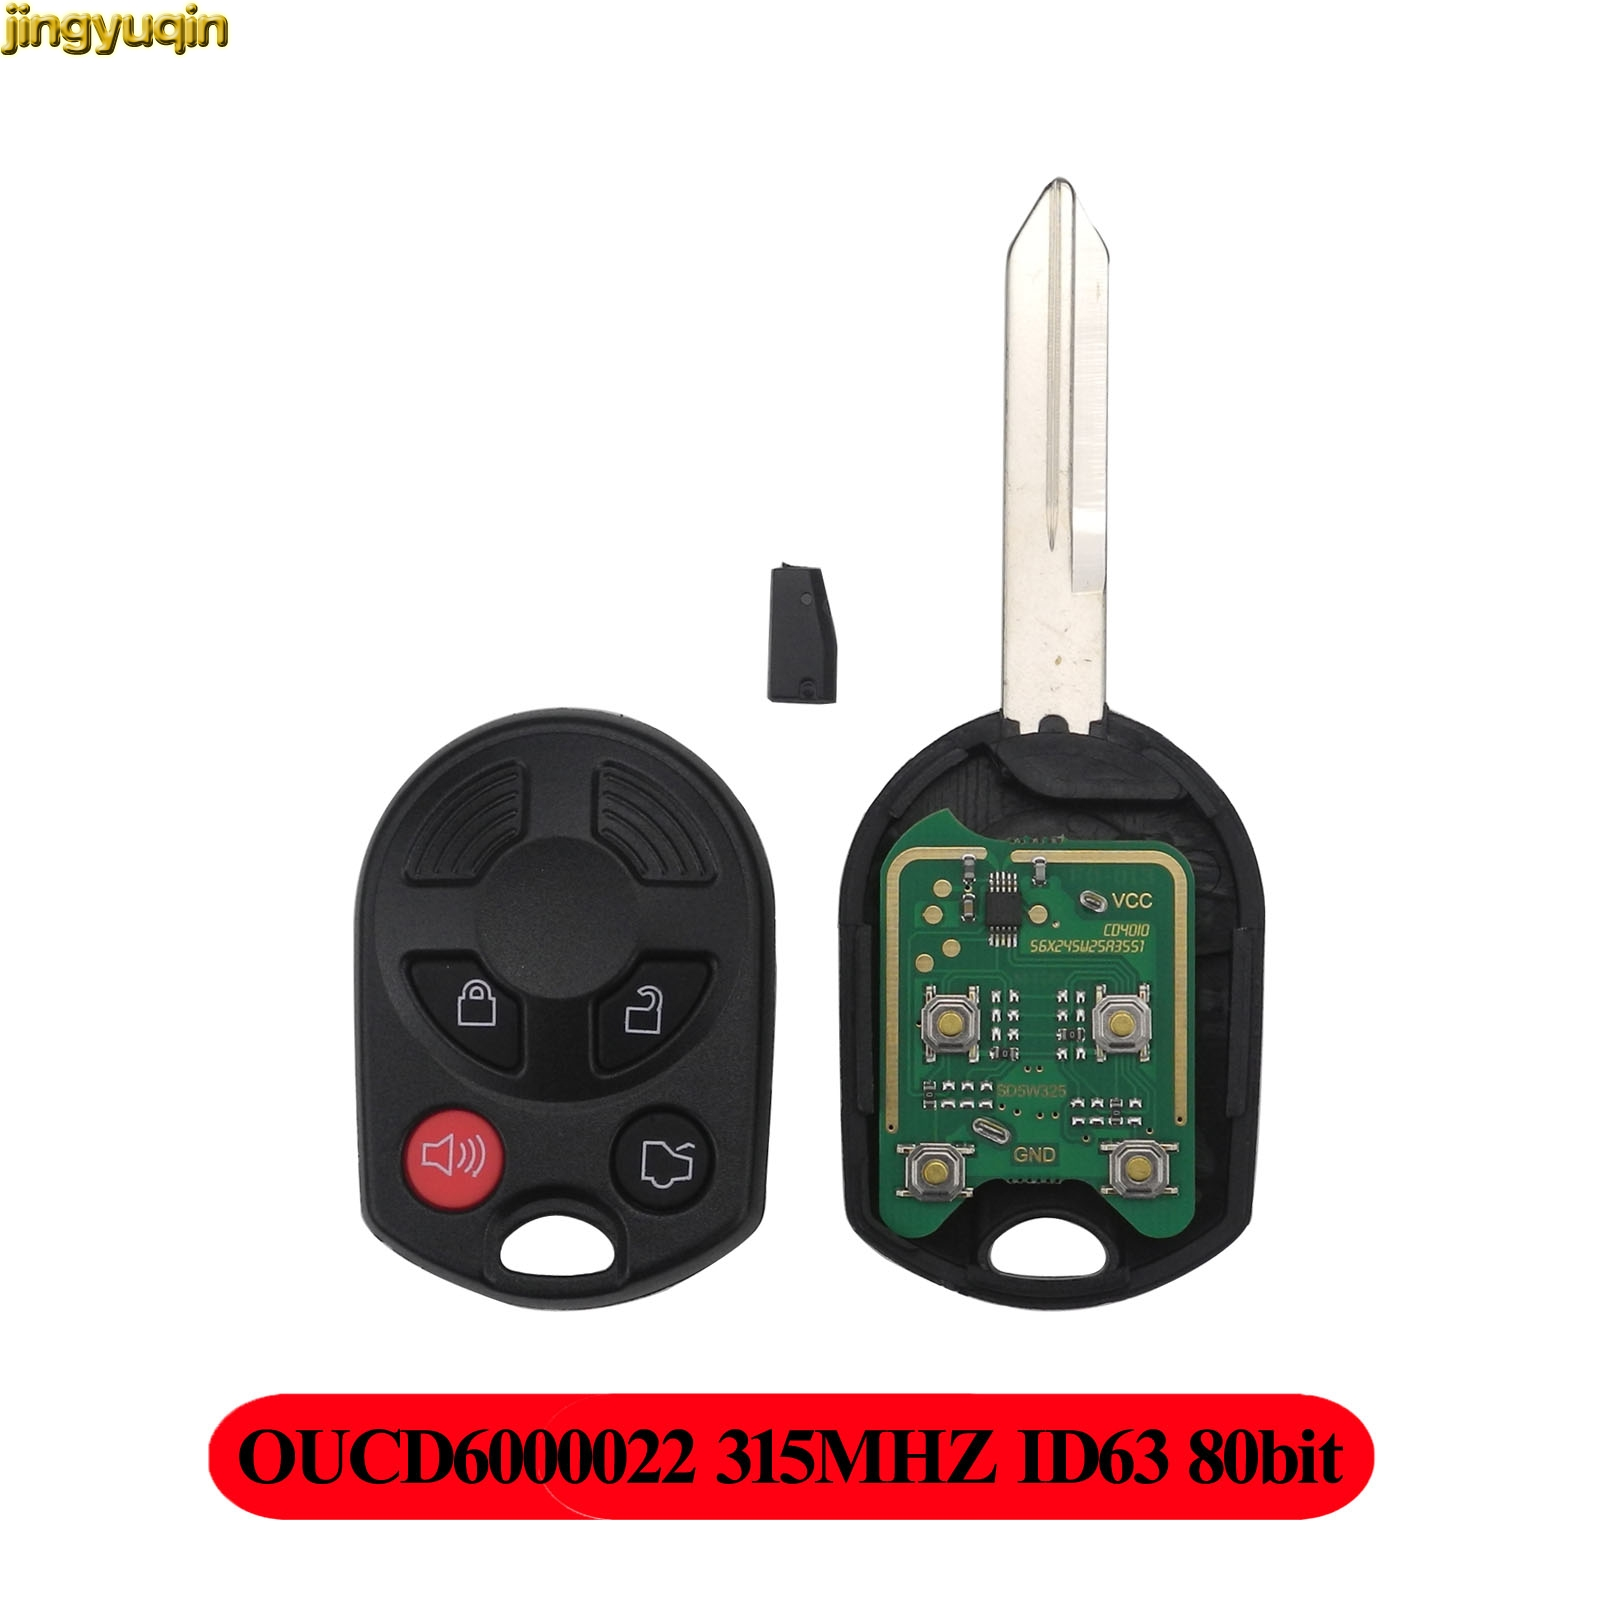 Jingyuqin Remote Car Complete Key 315MHZ CY22 for Ford Escape Keyless Entry Combo OUCD6000022 ID63 Transponder Chip 80bit 4BTN|Car Key| |  - title=